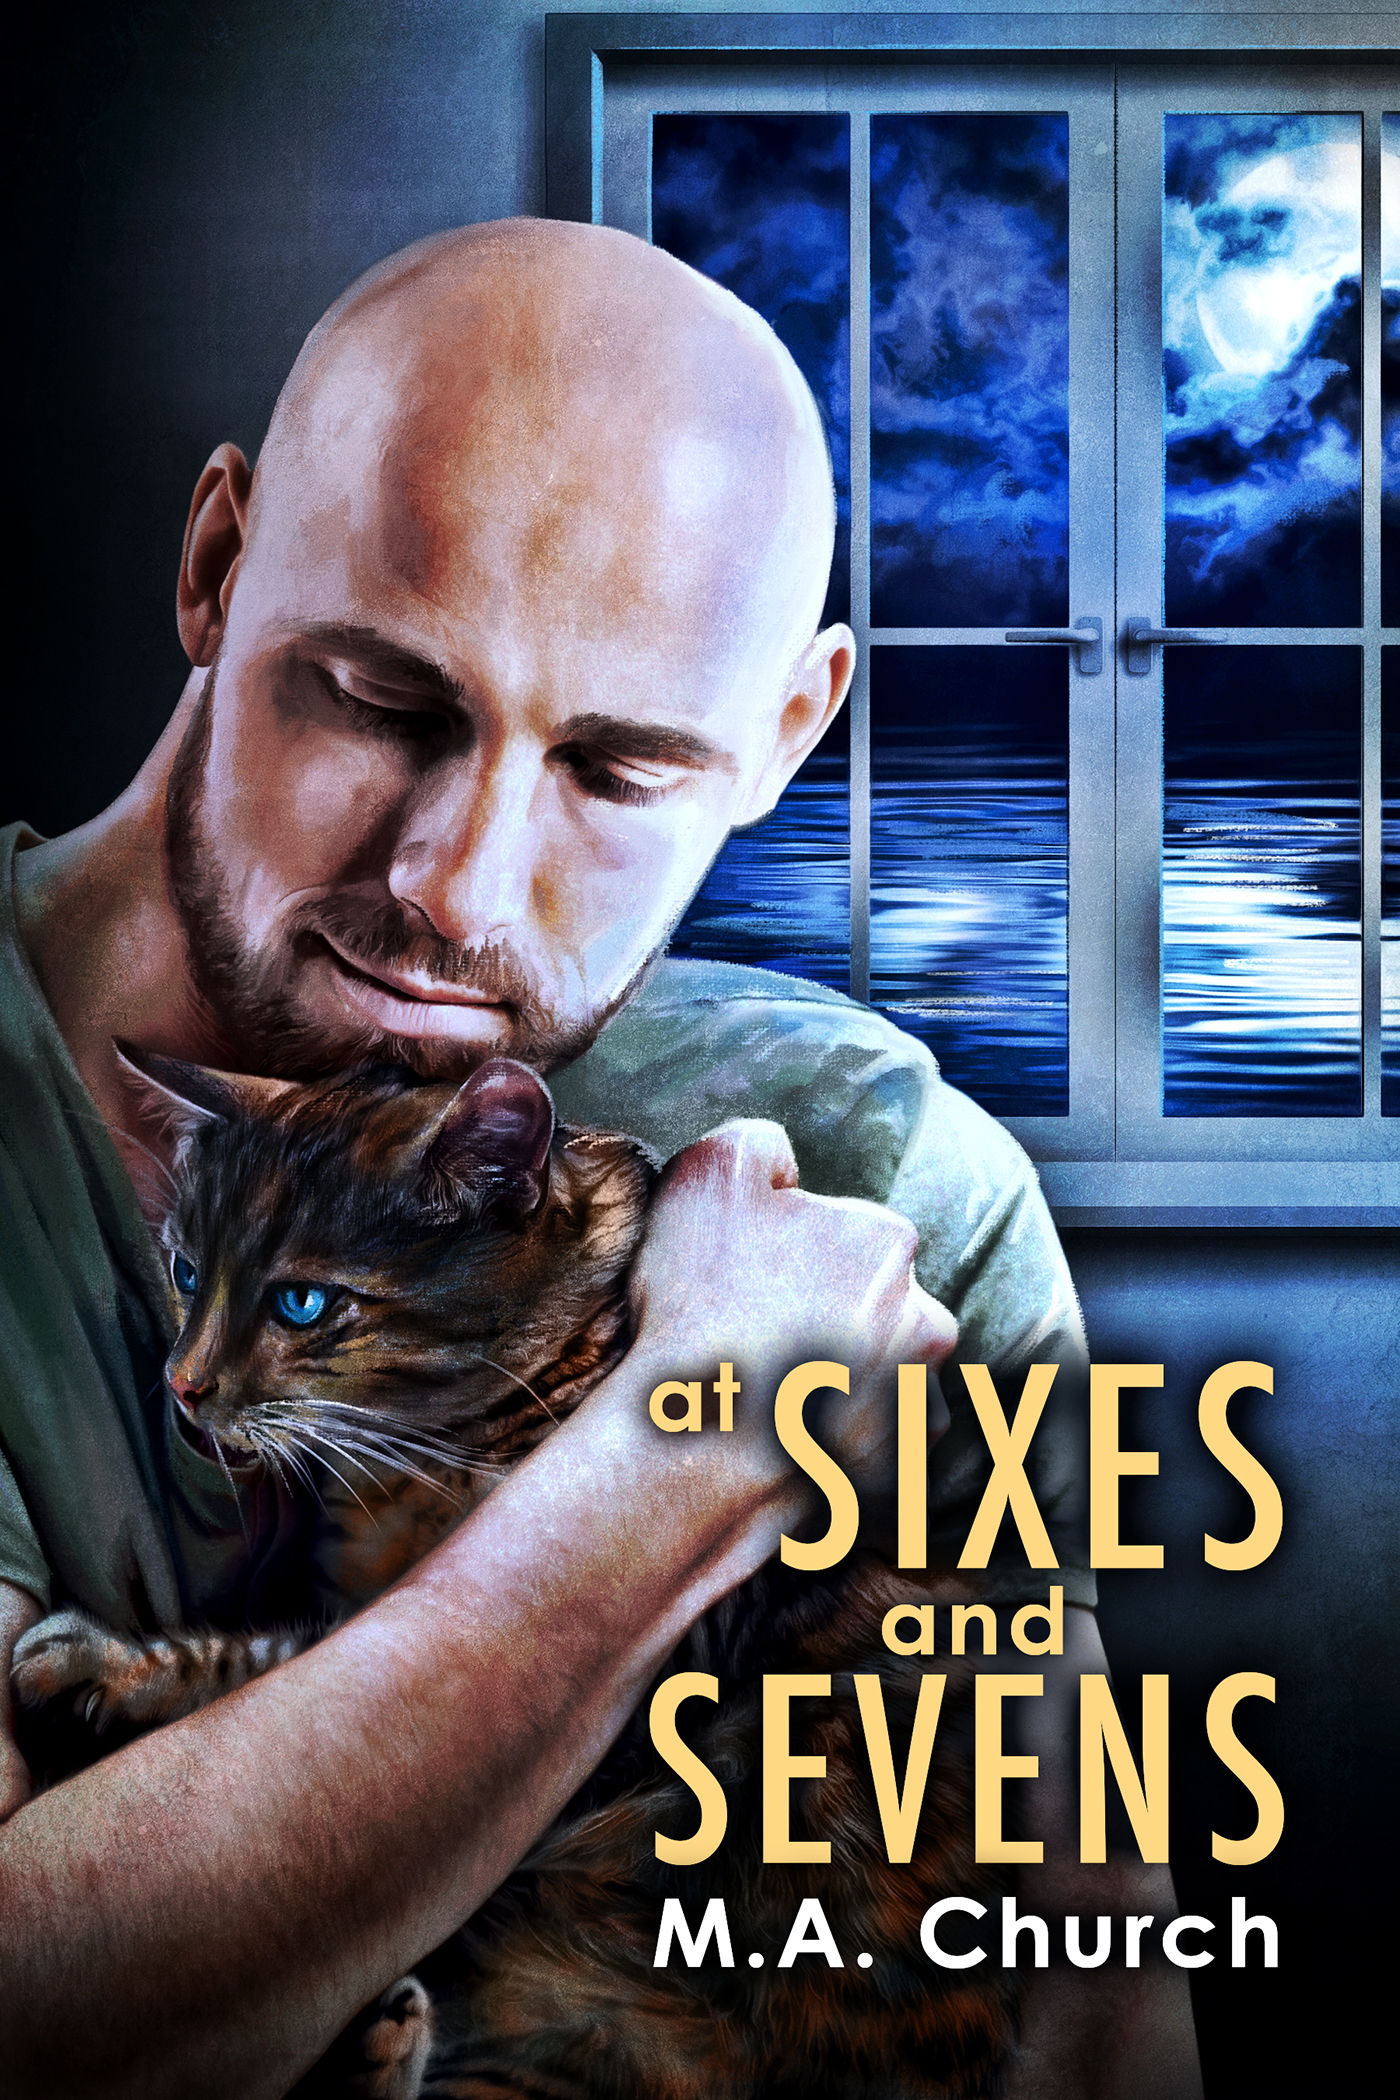 Review: At Sixes and Sevens by M.A. Church